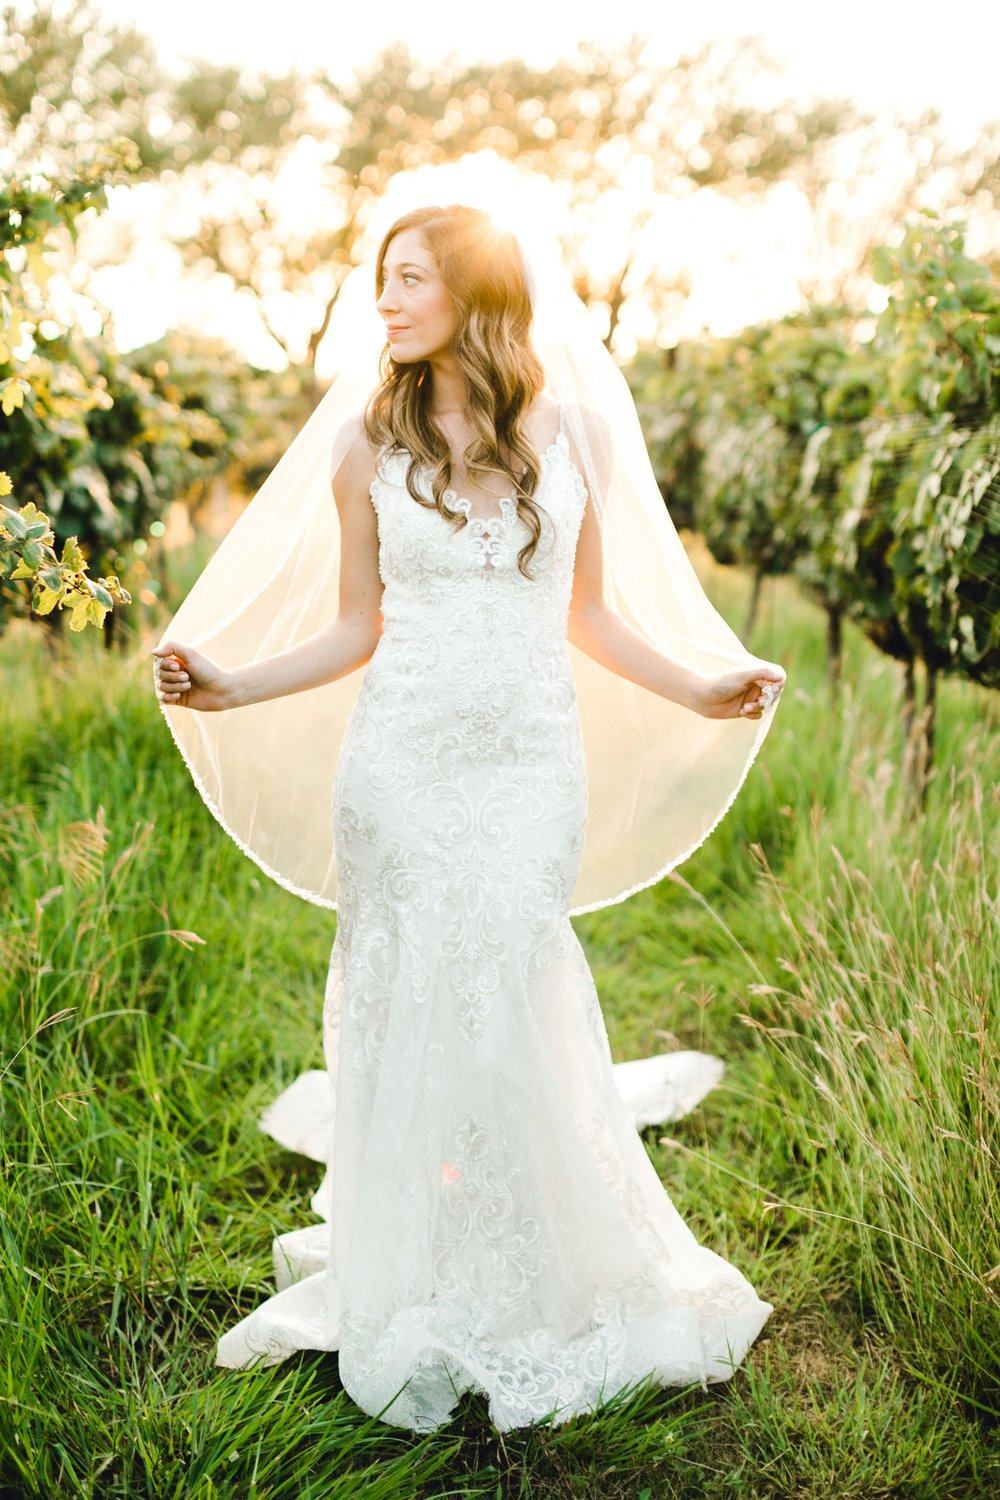 Ashley_Parr_Bridals_ALLEEJ_caprock_winery_romantic_elegant0025.jpg